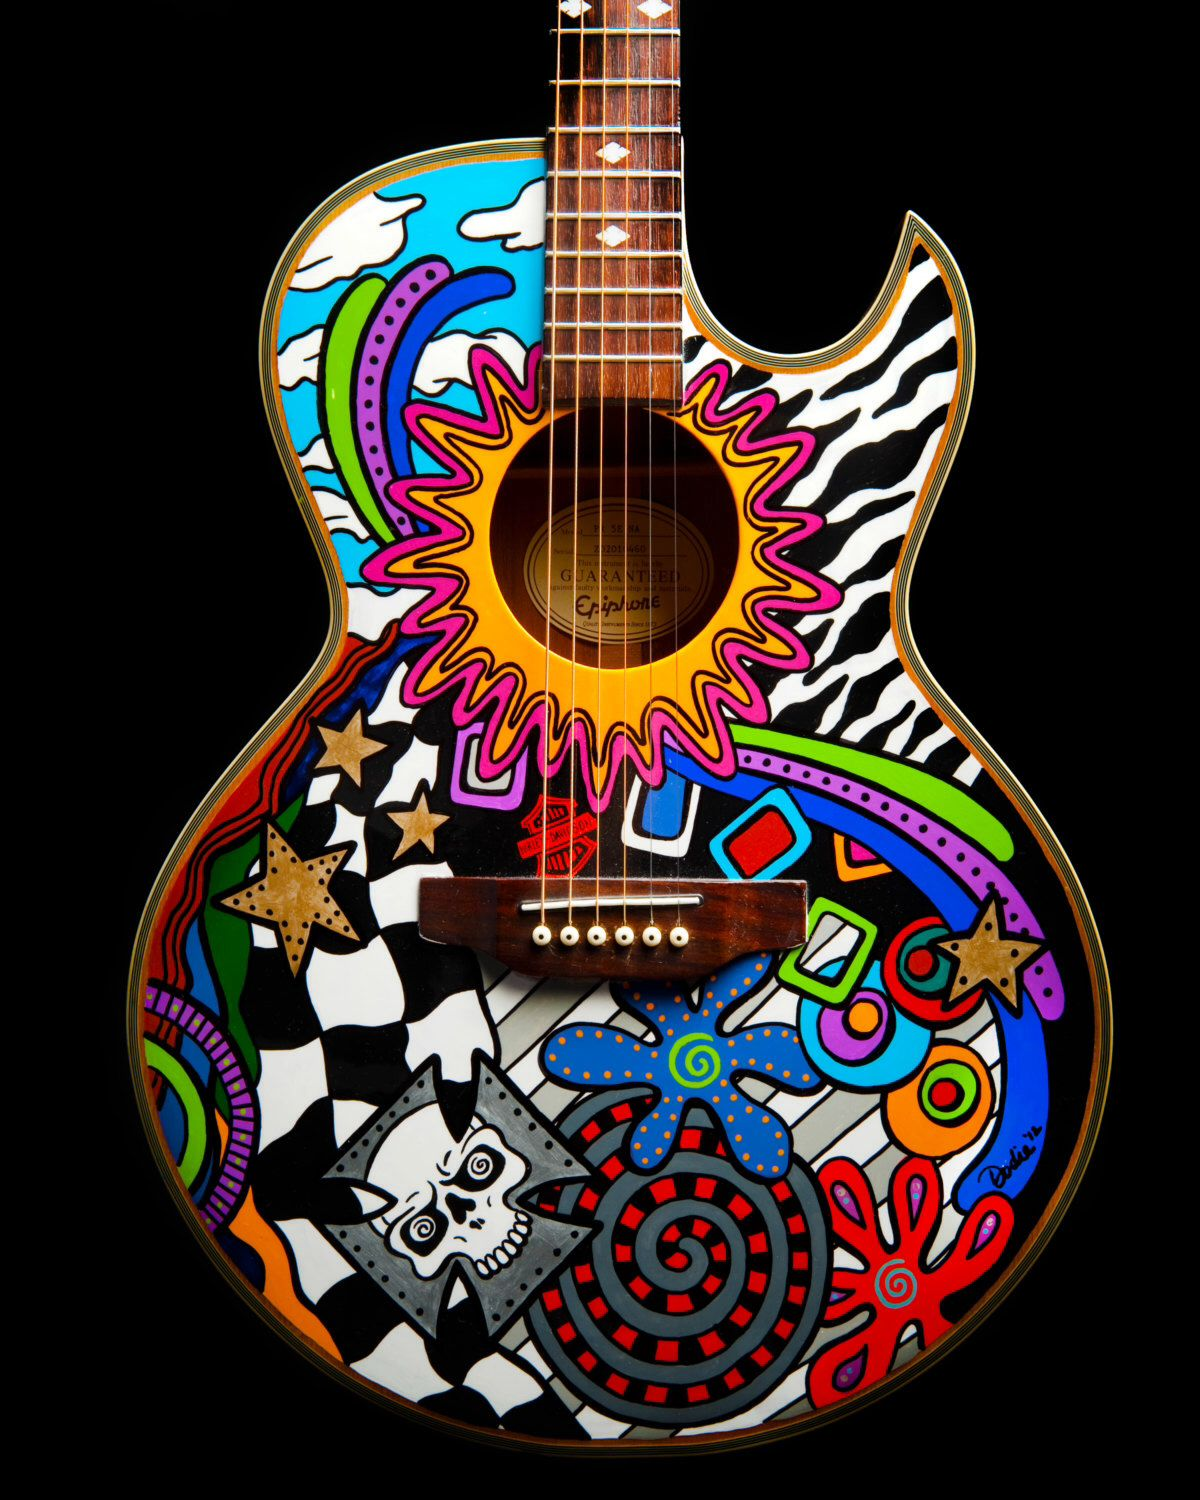 How To Paint A Guitar : hand painted guitar custom guitar musical instruments painted musical instruments painted ~ Russianpoet.info Haus und Dekorationen